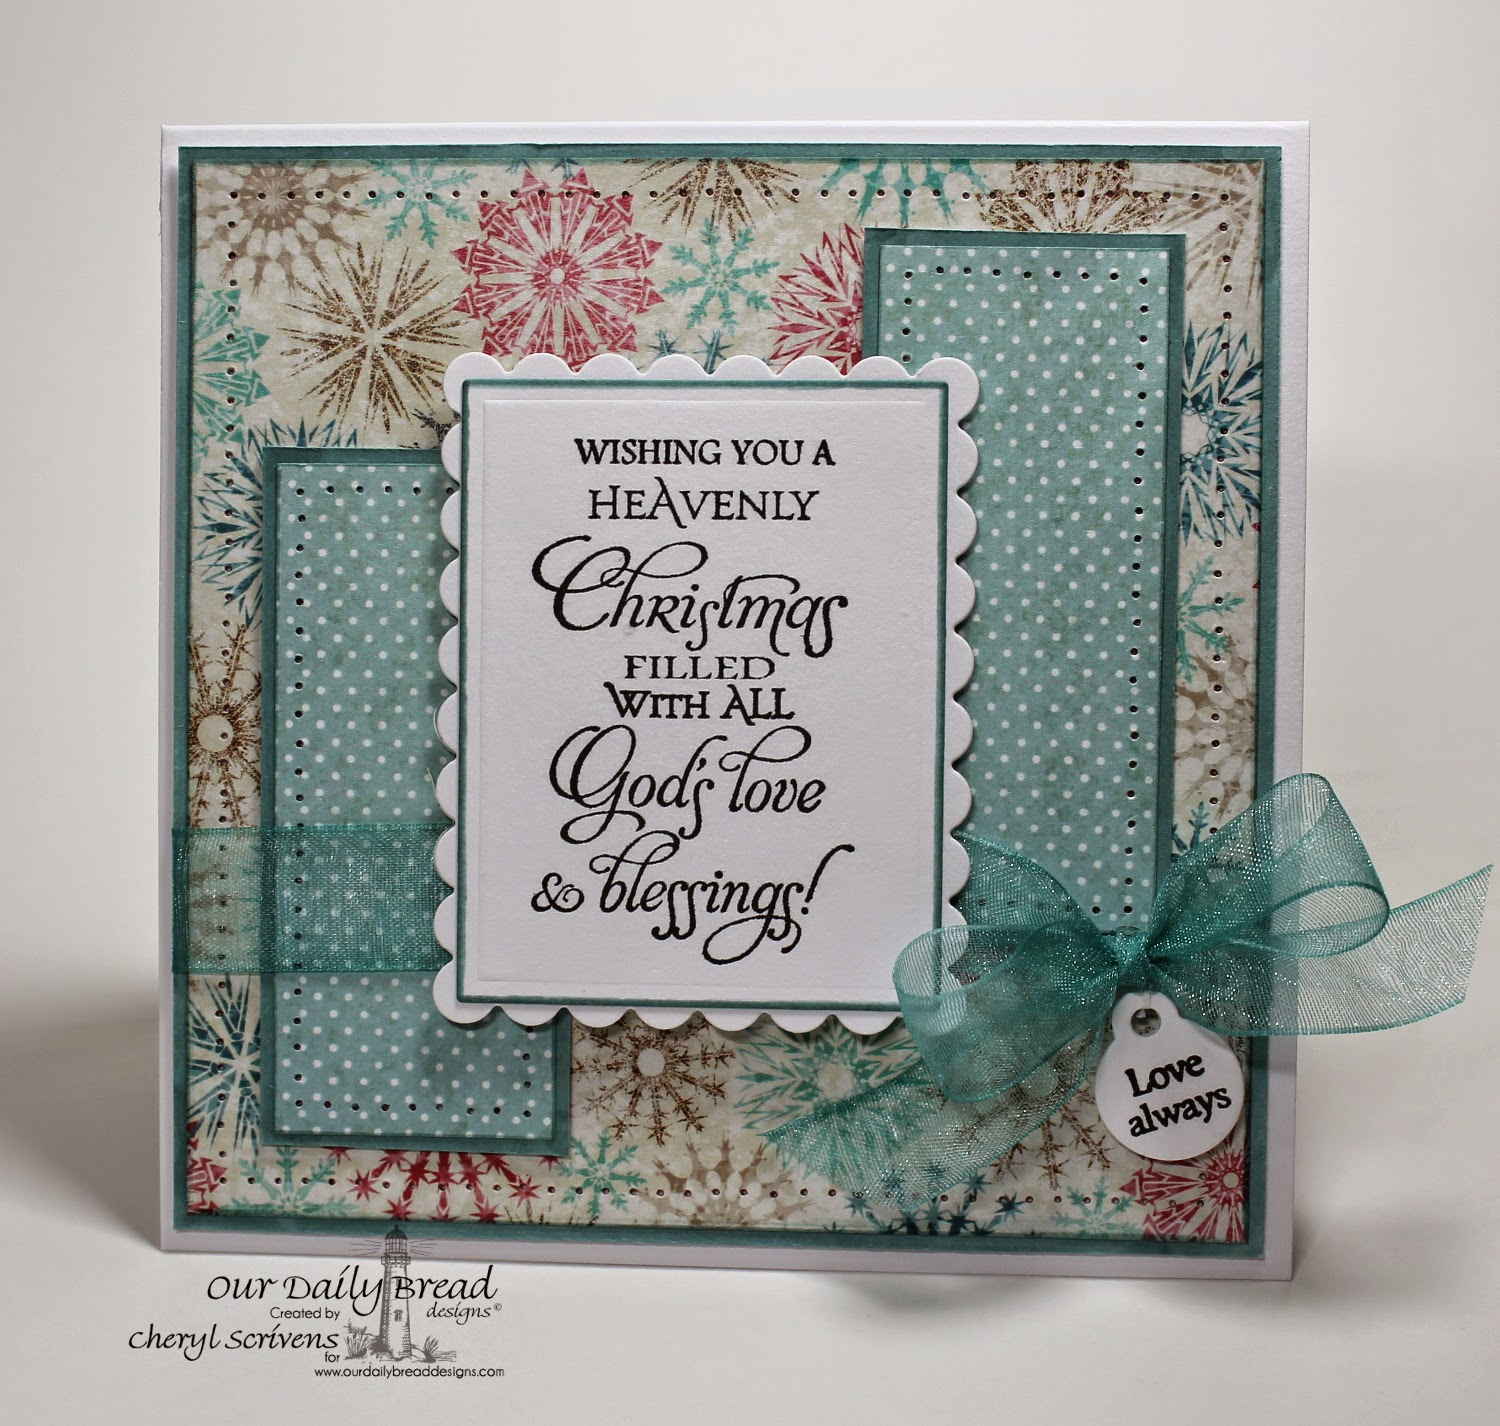 Our Daily Bread Designs, ODBDSLC220, Christmas Blessings, Mini Tag Sentiments, Mini Tags dies, Christmas Paper Collection 2014, CherylQuilts, Designed by Cheryl Scrivens